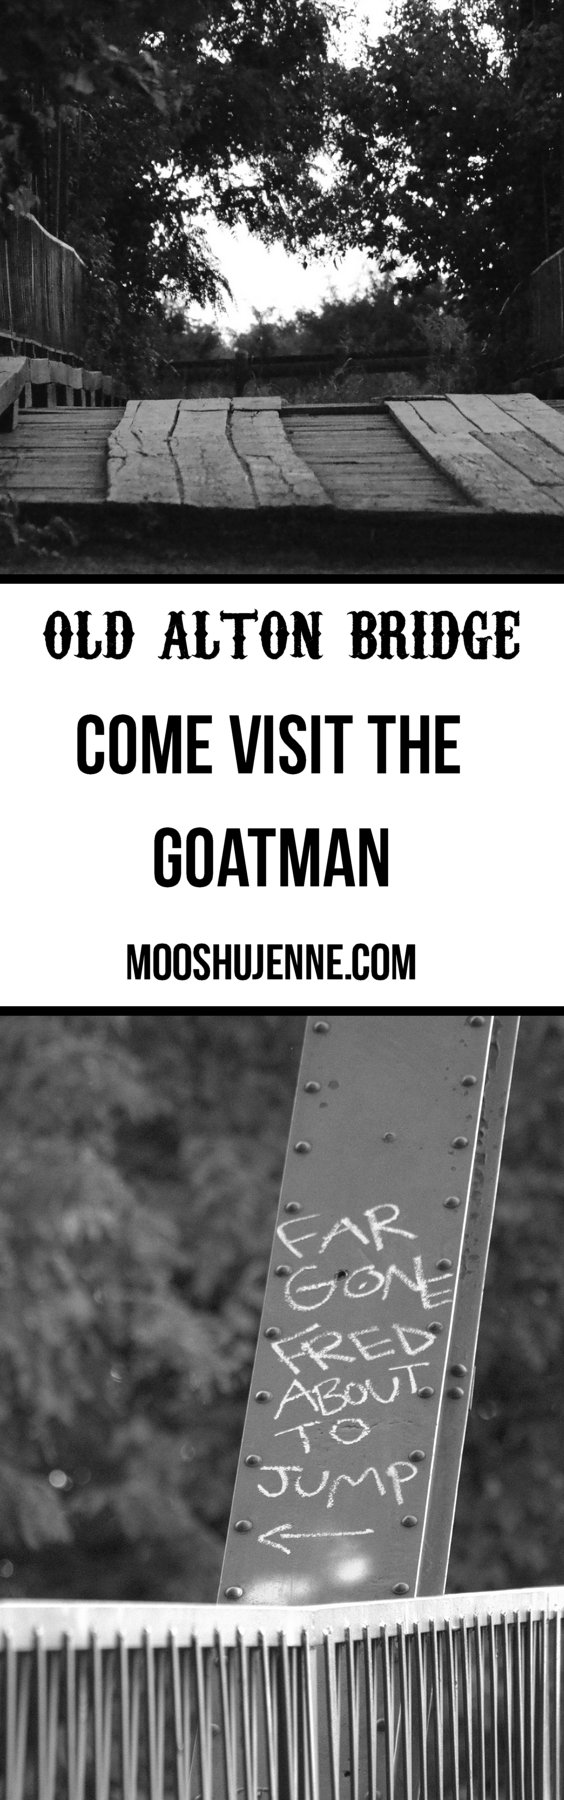 Goatman's Bridge also known as Old Alton Bridge located in Denton, Texas is one of those places that when you come to town and ask about hauntings that the first place everyone will point you to. The bridge comes with personal stories, gossip, and myths. It's just one of those places that has a story of it's own.